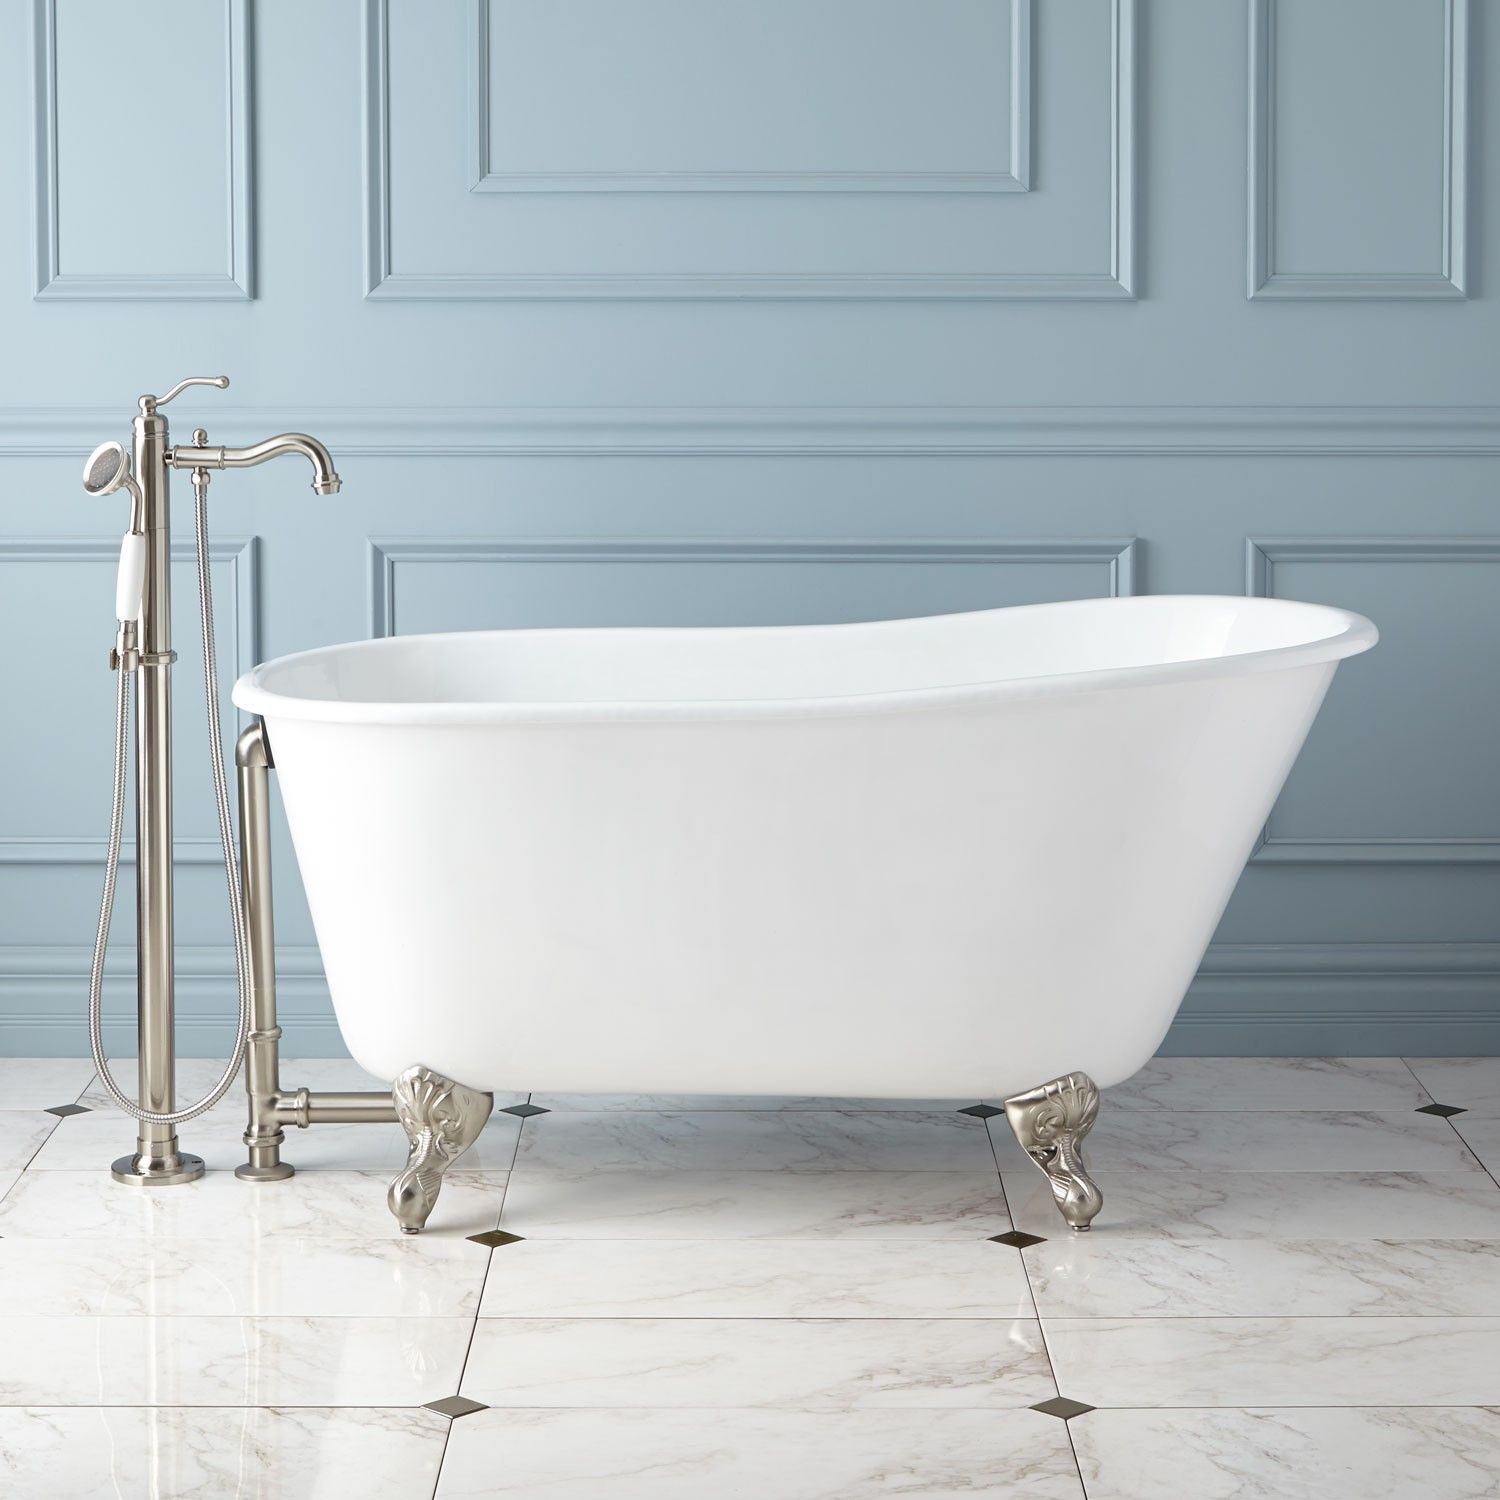 Carine Cast Iron Slipper Clawfoot Tub | Tubs, Iron and Clawfoot tub ...